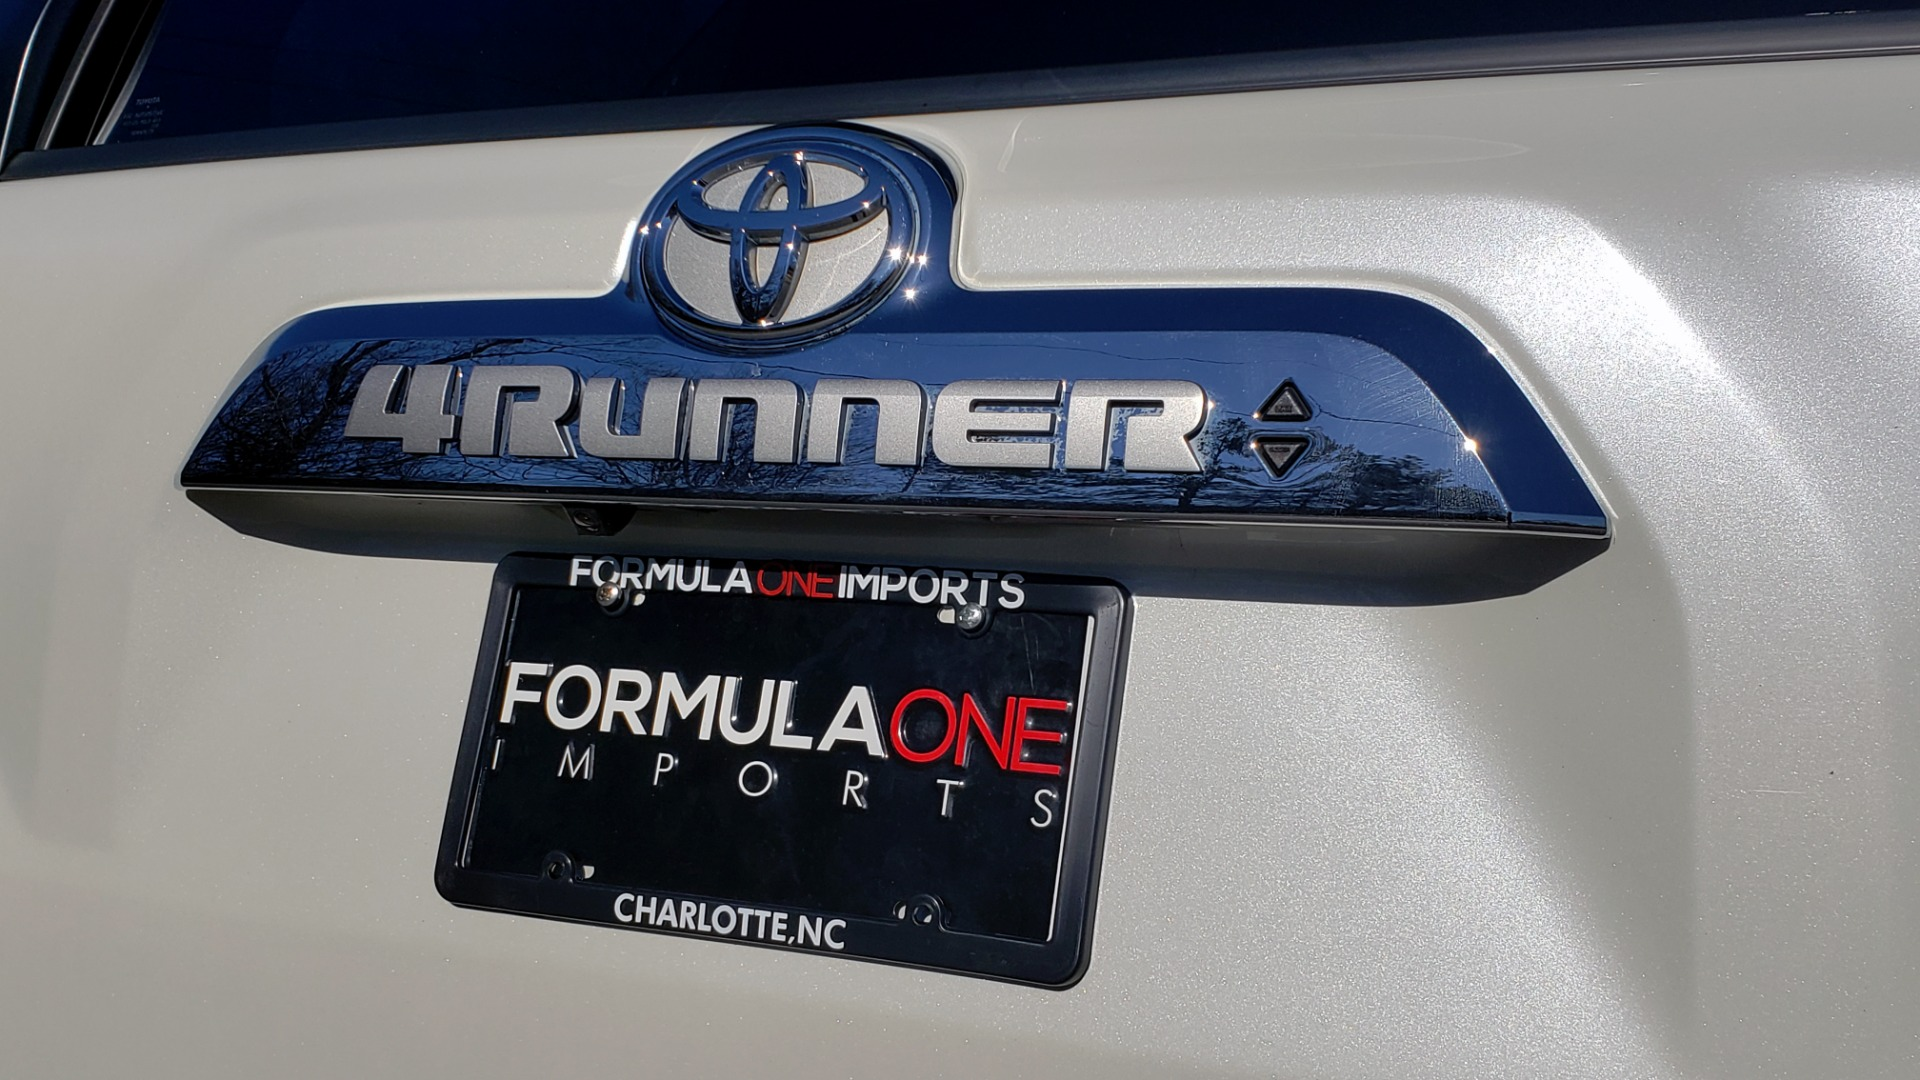 Used 2018 Toyota 4RUNNER LIMITED 4X4 / 4.0L V6 / AUTO / NAV / SUNROOF / JBL AUDIO / REARVIEW for sale Sold at Formula Imports in Charlotte NC 28227 29